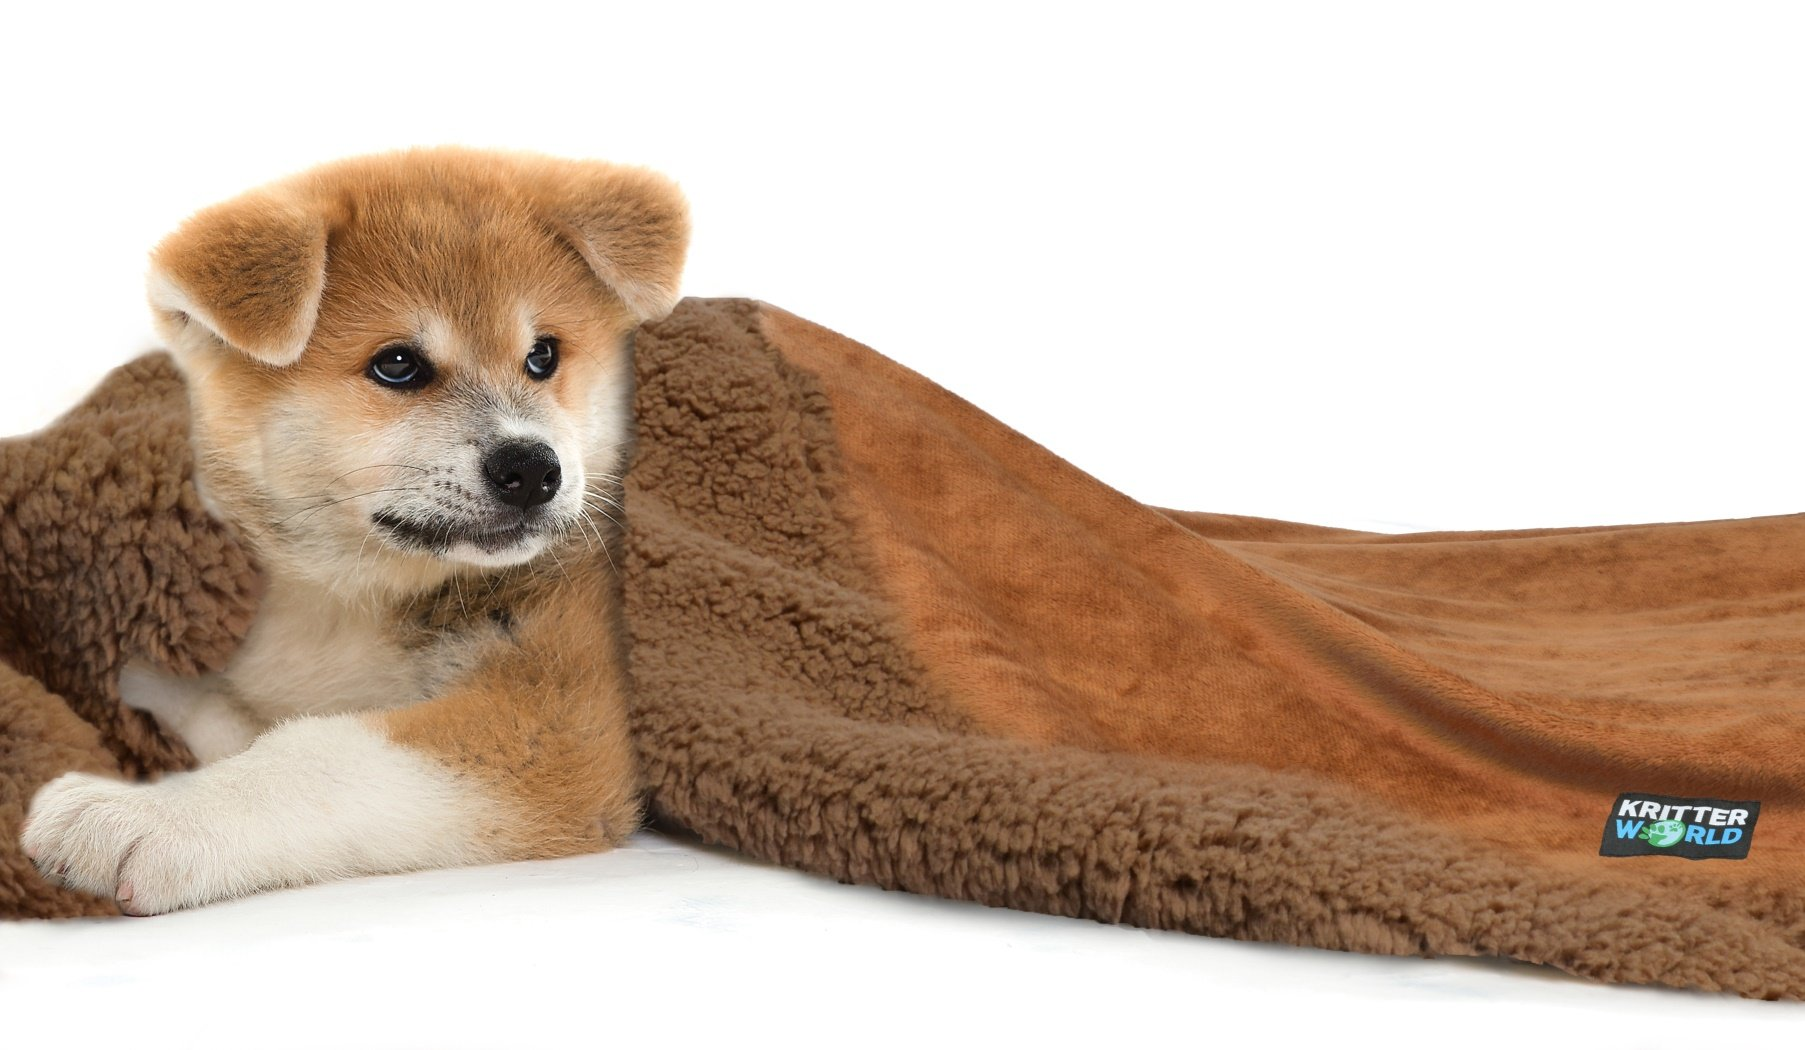 KritterWorld Pet Dog Cat Puppy Kitten Microplush Sherpa Snuggle Blanket for Couch, Car, Trunk, Cage, Kennel, Dog House, 45'' x30'' Dark Brown/Brown by KritterWorld (Image #1)